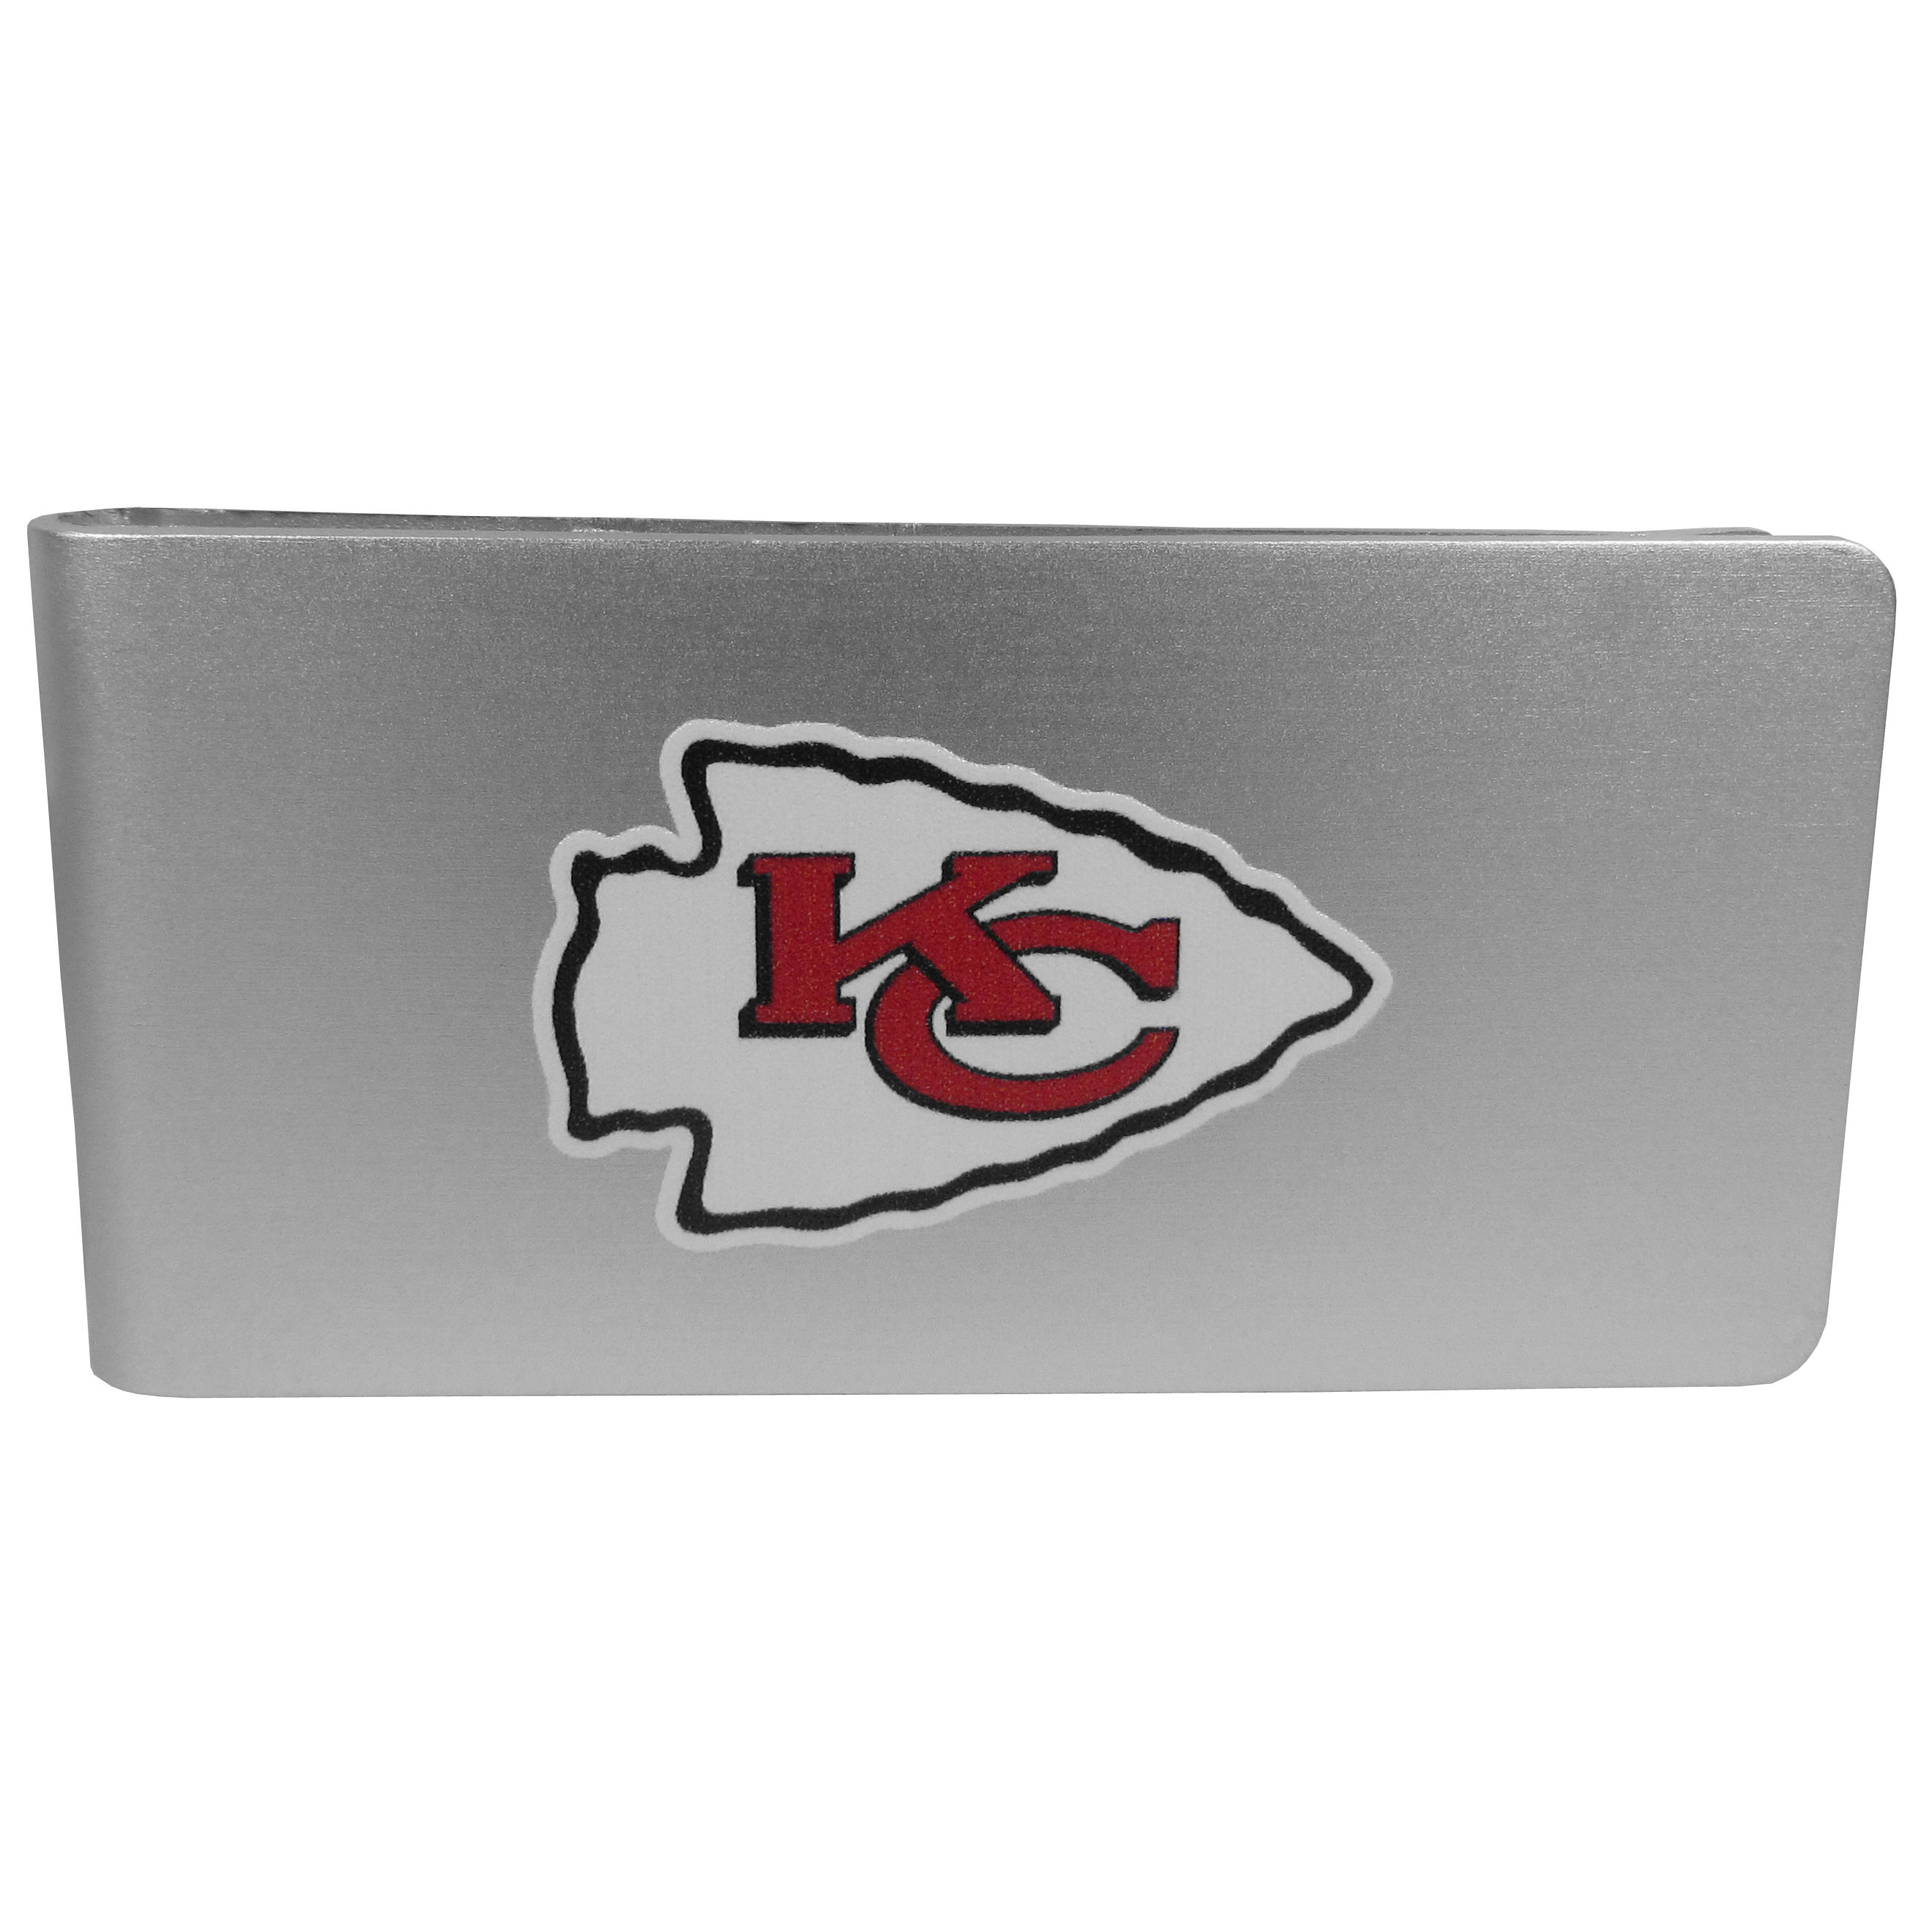 Kansas City Chiefs Logo Money Clip - Our brushed metal money clip has classic style and functionality. The attractive clip features the Kansas City Chiefs logo expertly printed on front.